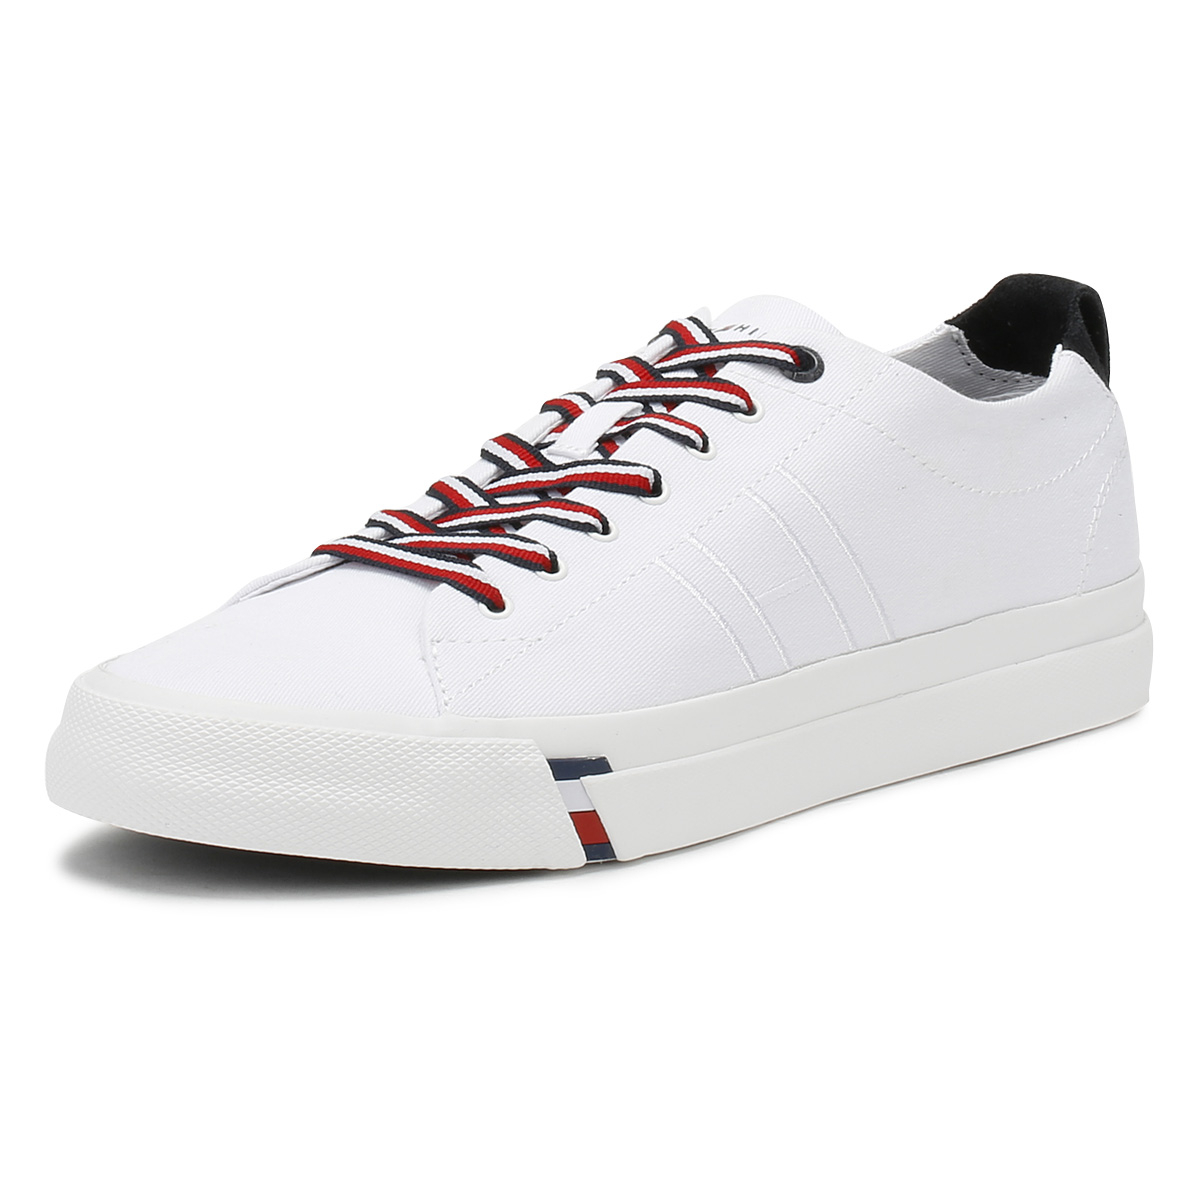 Tommy hilfiger mens white dino 1d trainers lace up sport casual tommy hilfiger mens white dino 1d trainers lace publicscrutiny